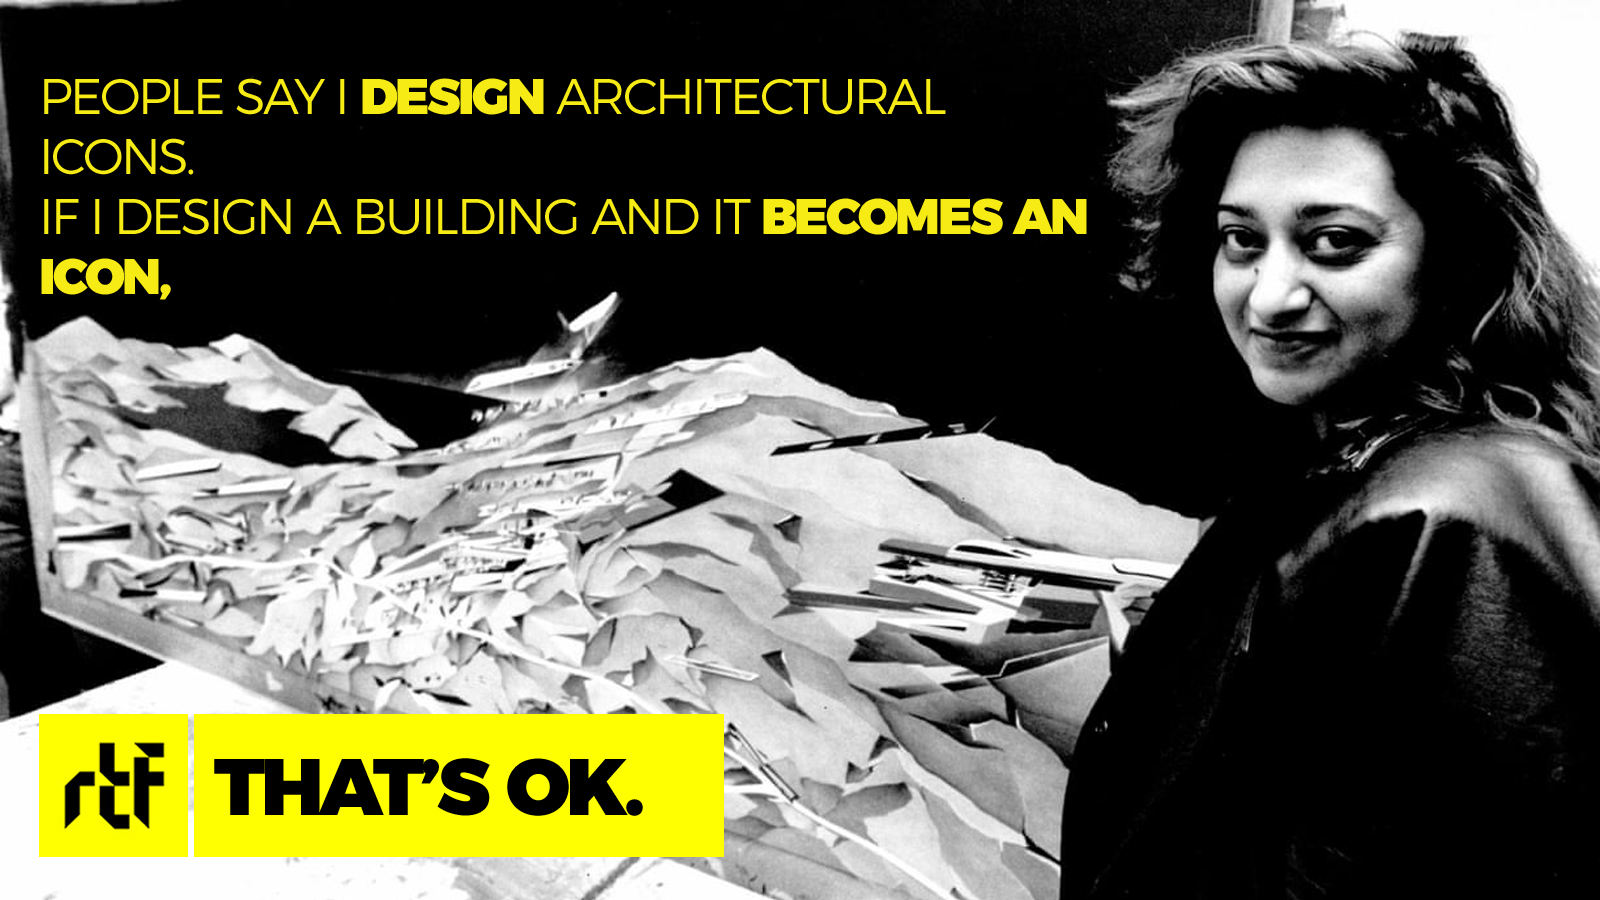 Zaha Hadid: The First Female Architect to win Pritzker Prize & RIBA Royal Gold Medal